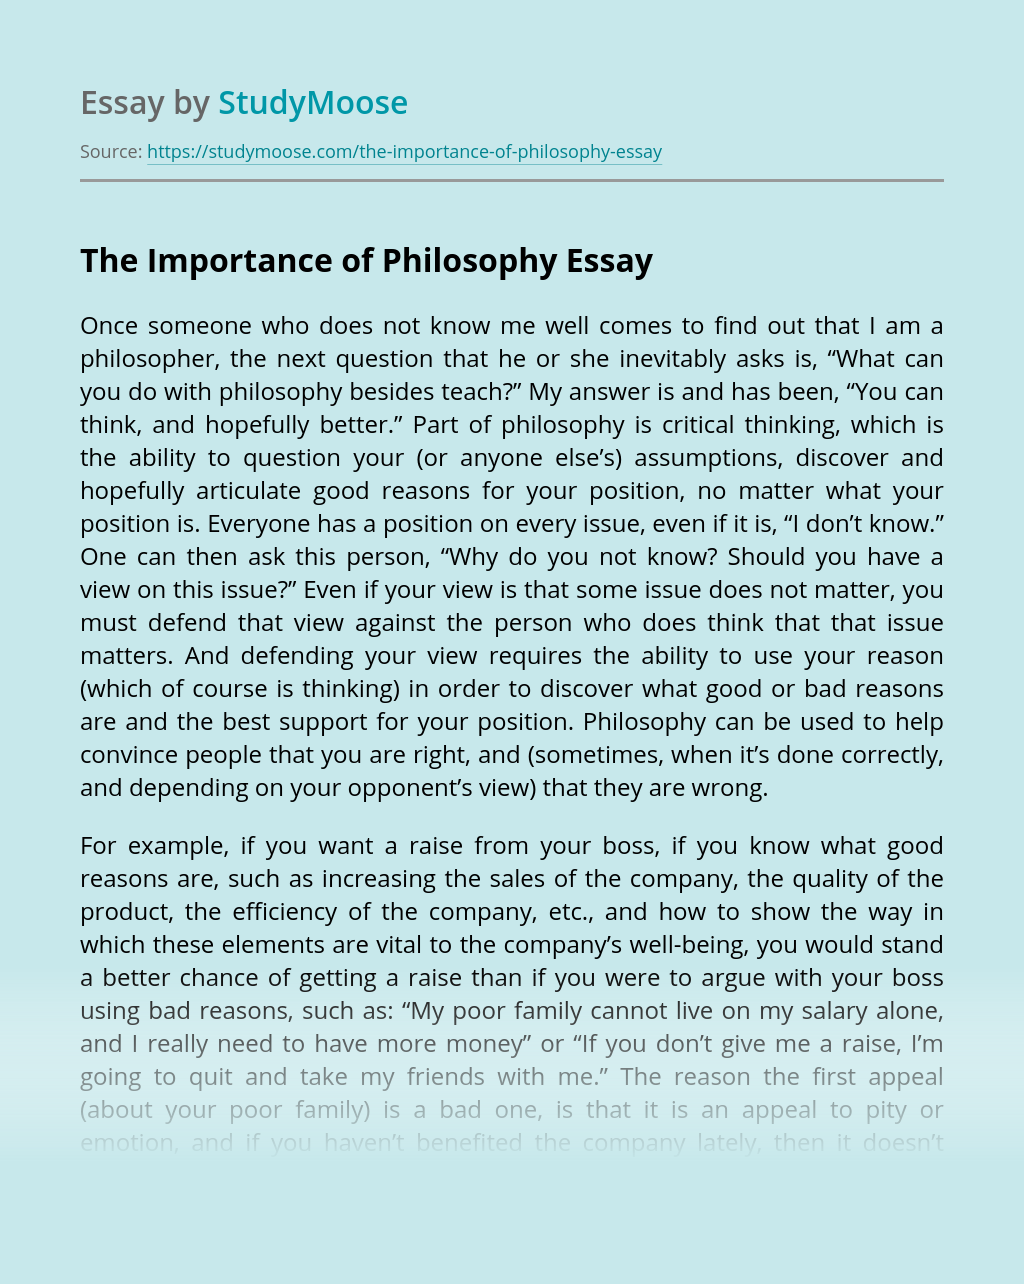 The Importance of Philosophy